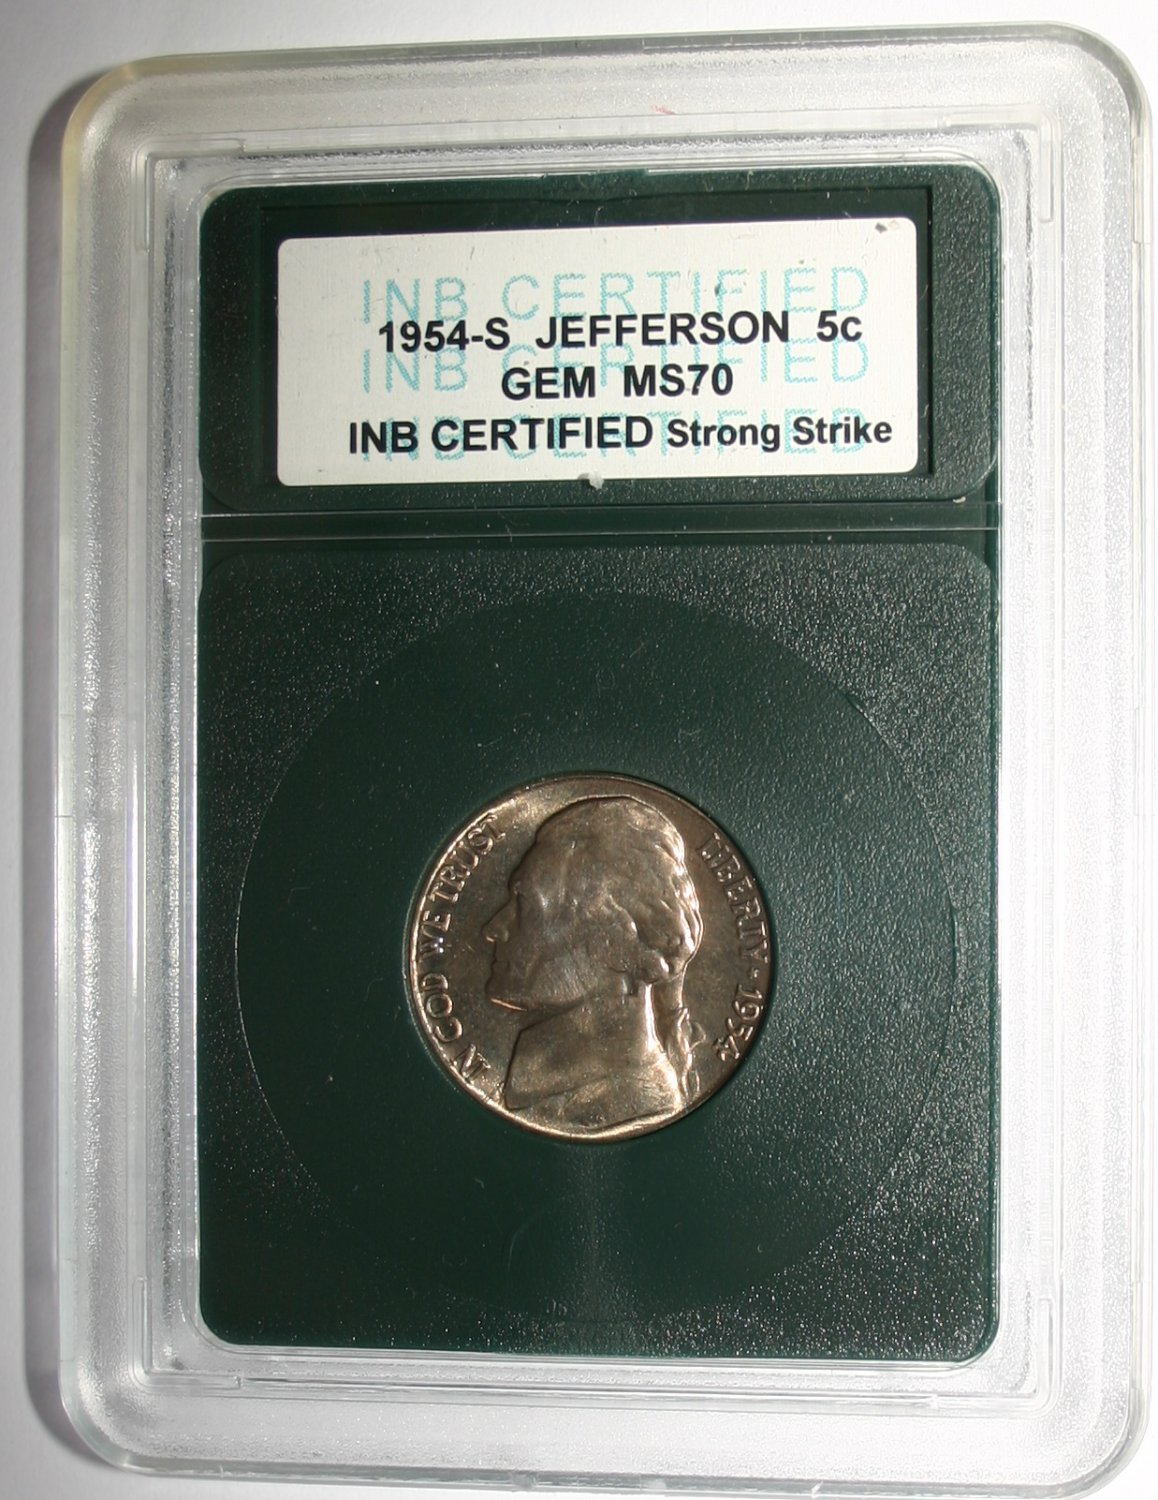 USA 1954-S Jefferson 5c Cent Coin GEM MS70 Strong Strike INB Certified Coin